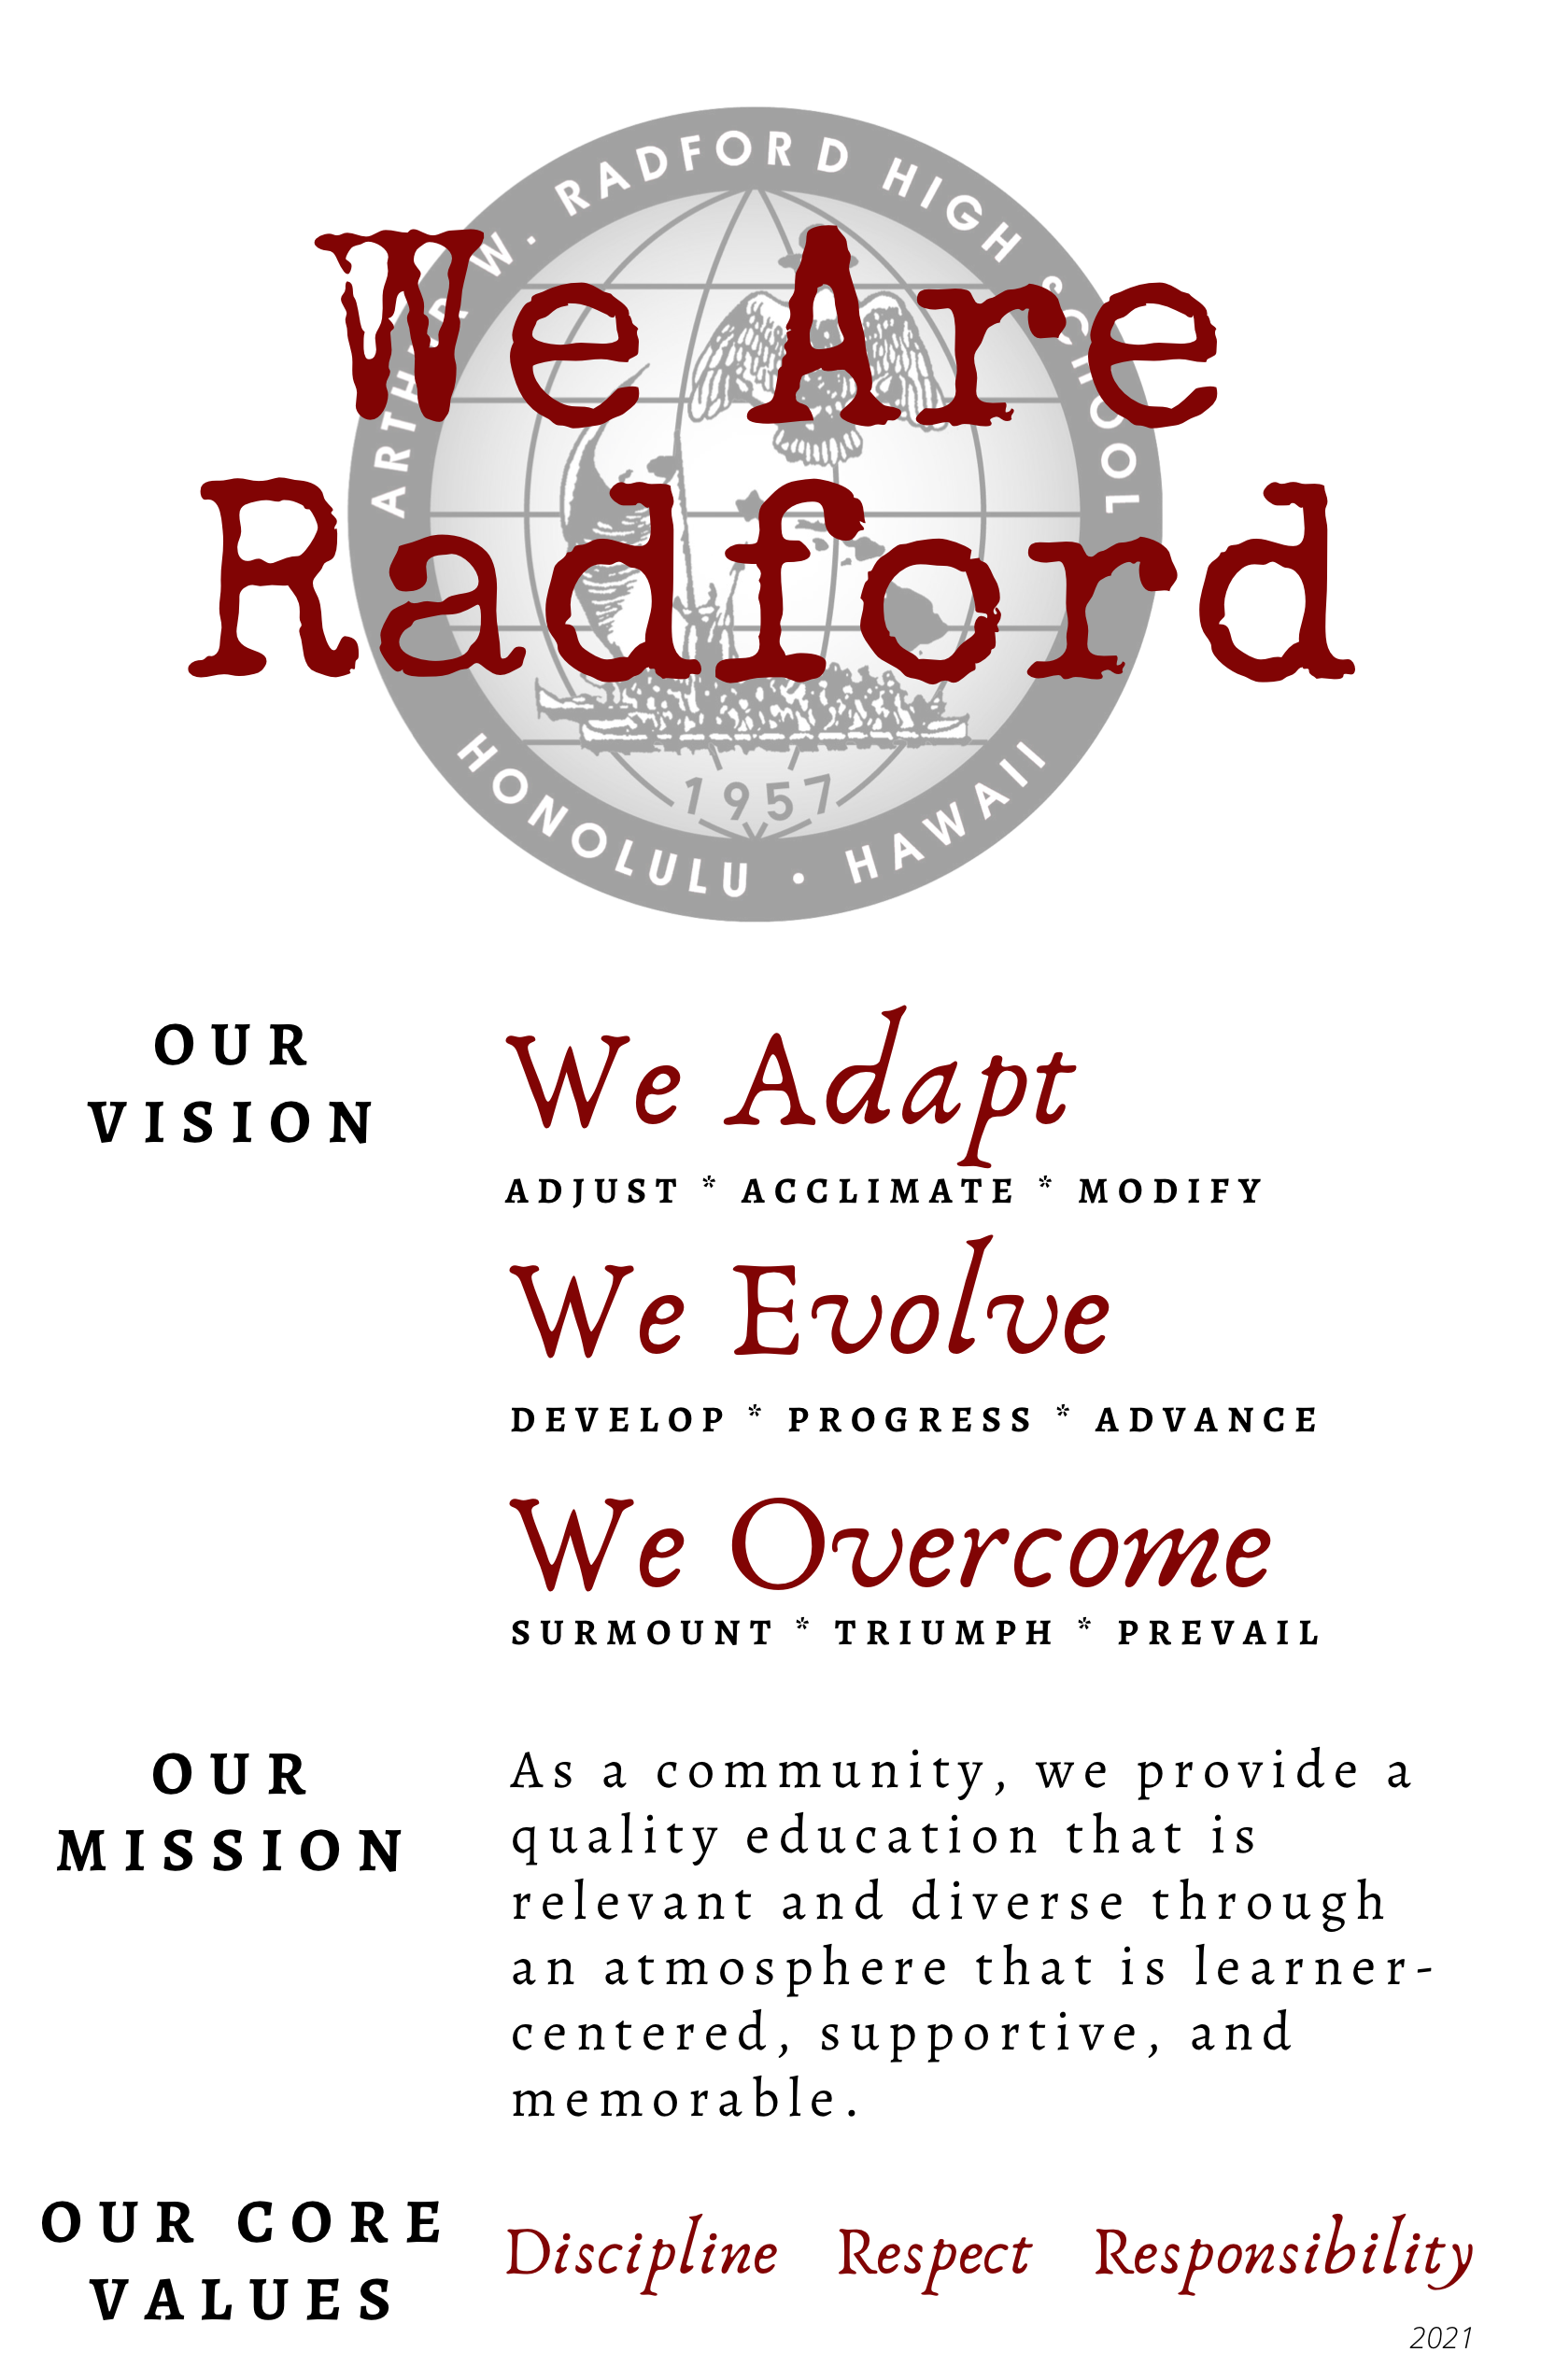 Our Vision and Mission Image